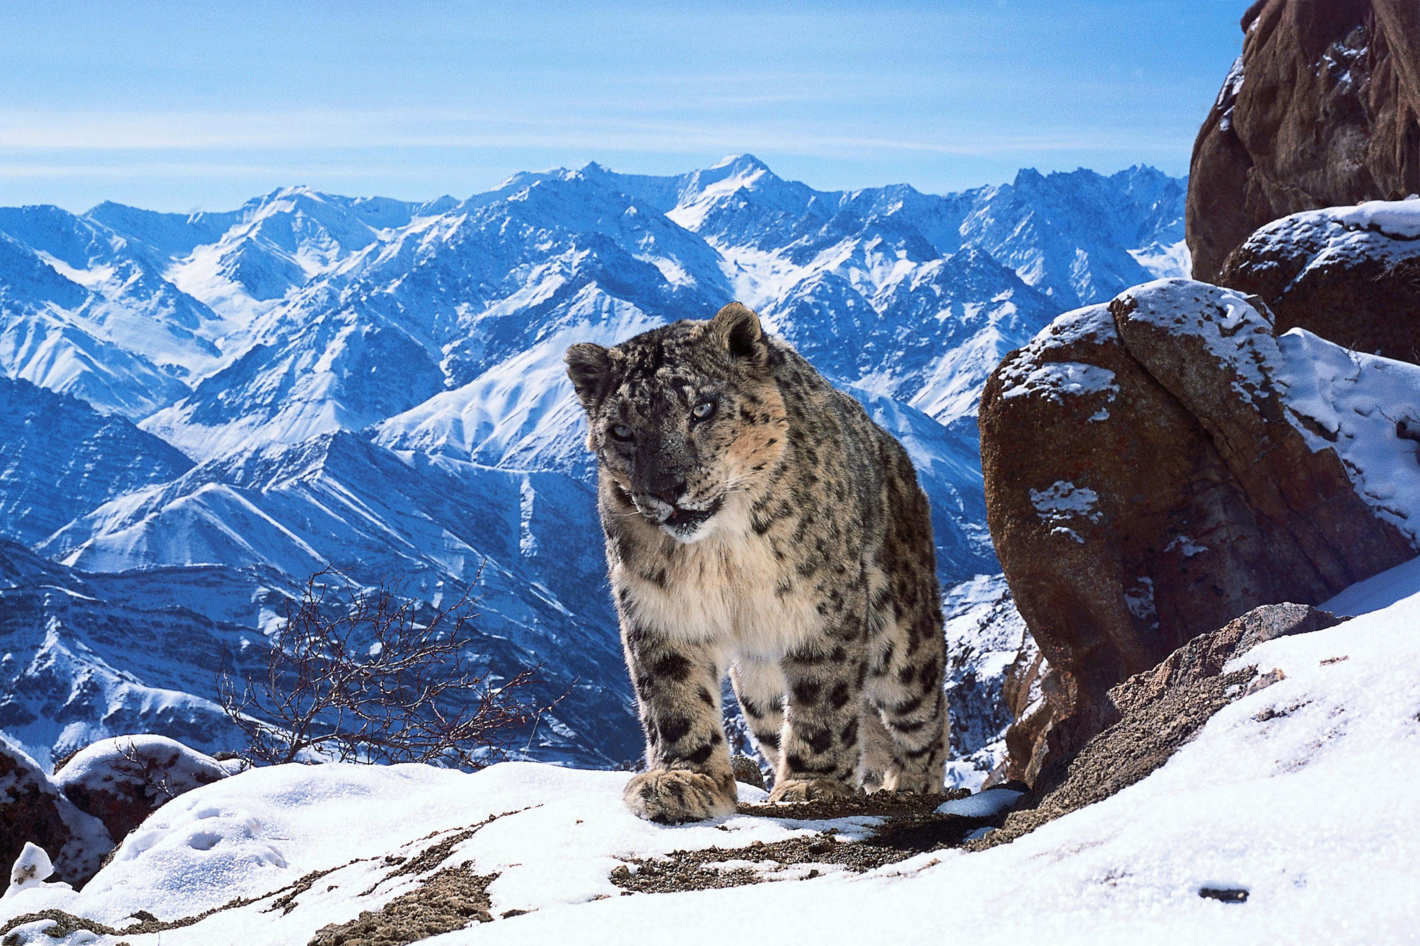 How To Watch Planet Earth Ii In 4k Ultra High Definition Video Of Be Streamed Online